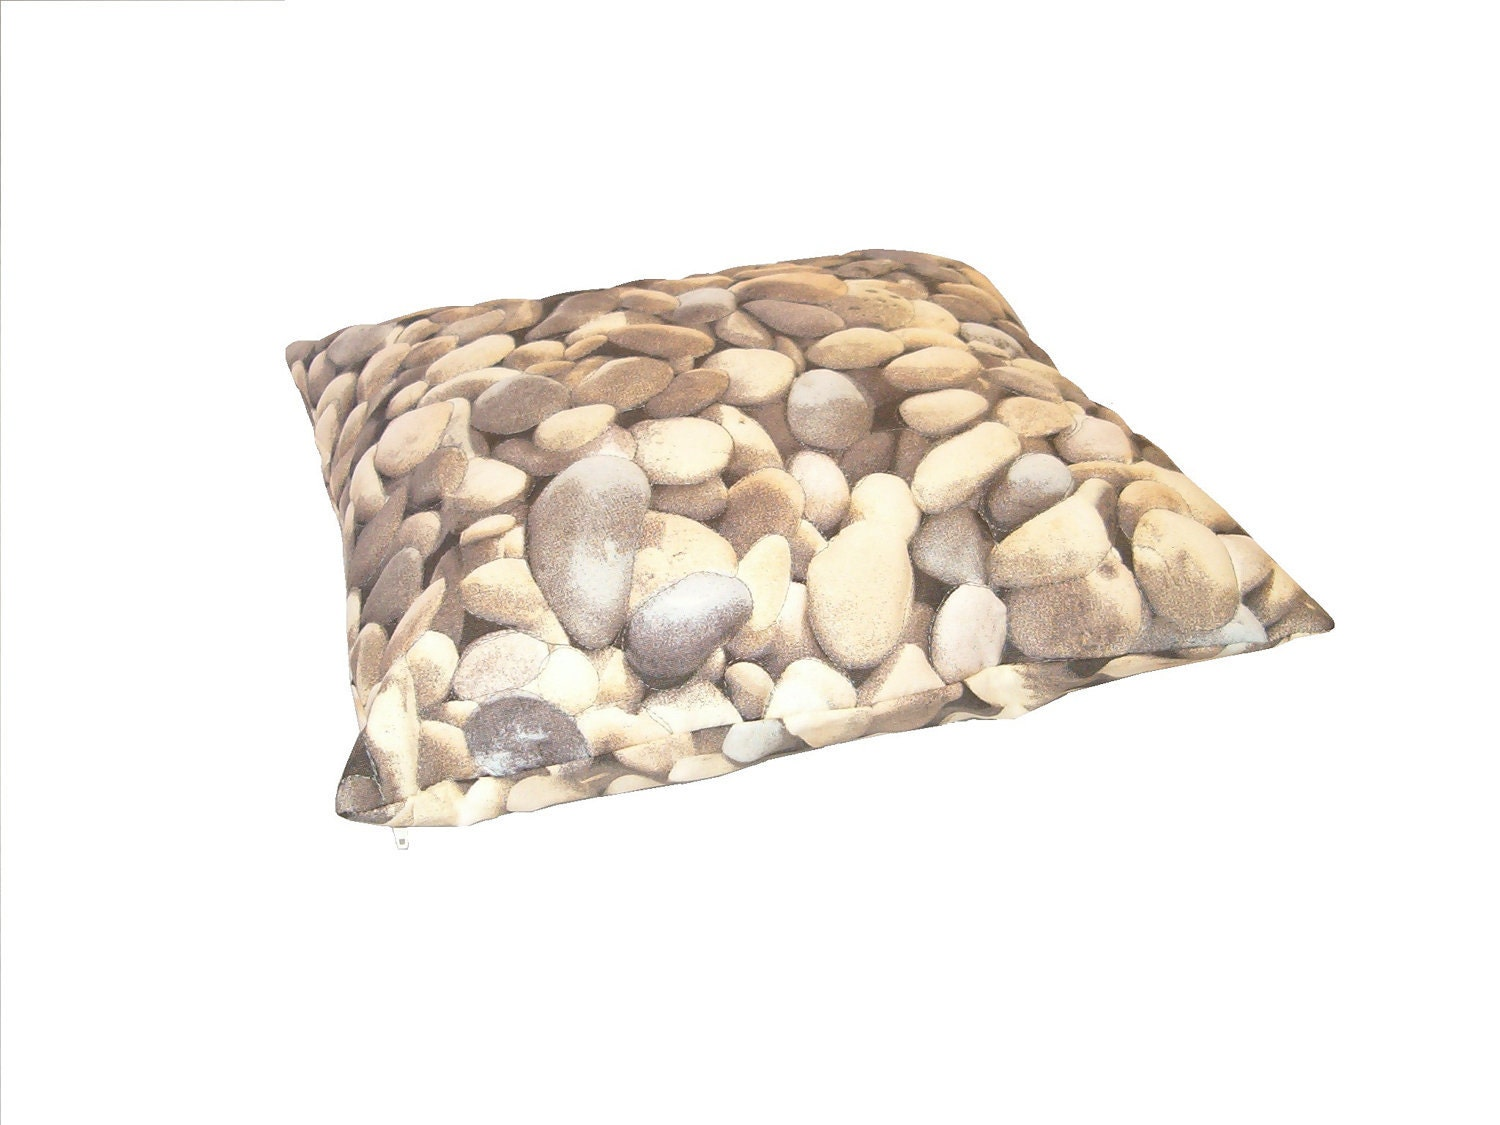 Rock Pillowcase - lumbar rectangular pebble stone natural photographic gray greige realistic landscape riverbed boulder 3D, HET - Customquiltsbyeva